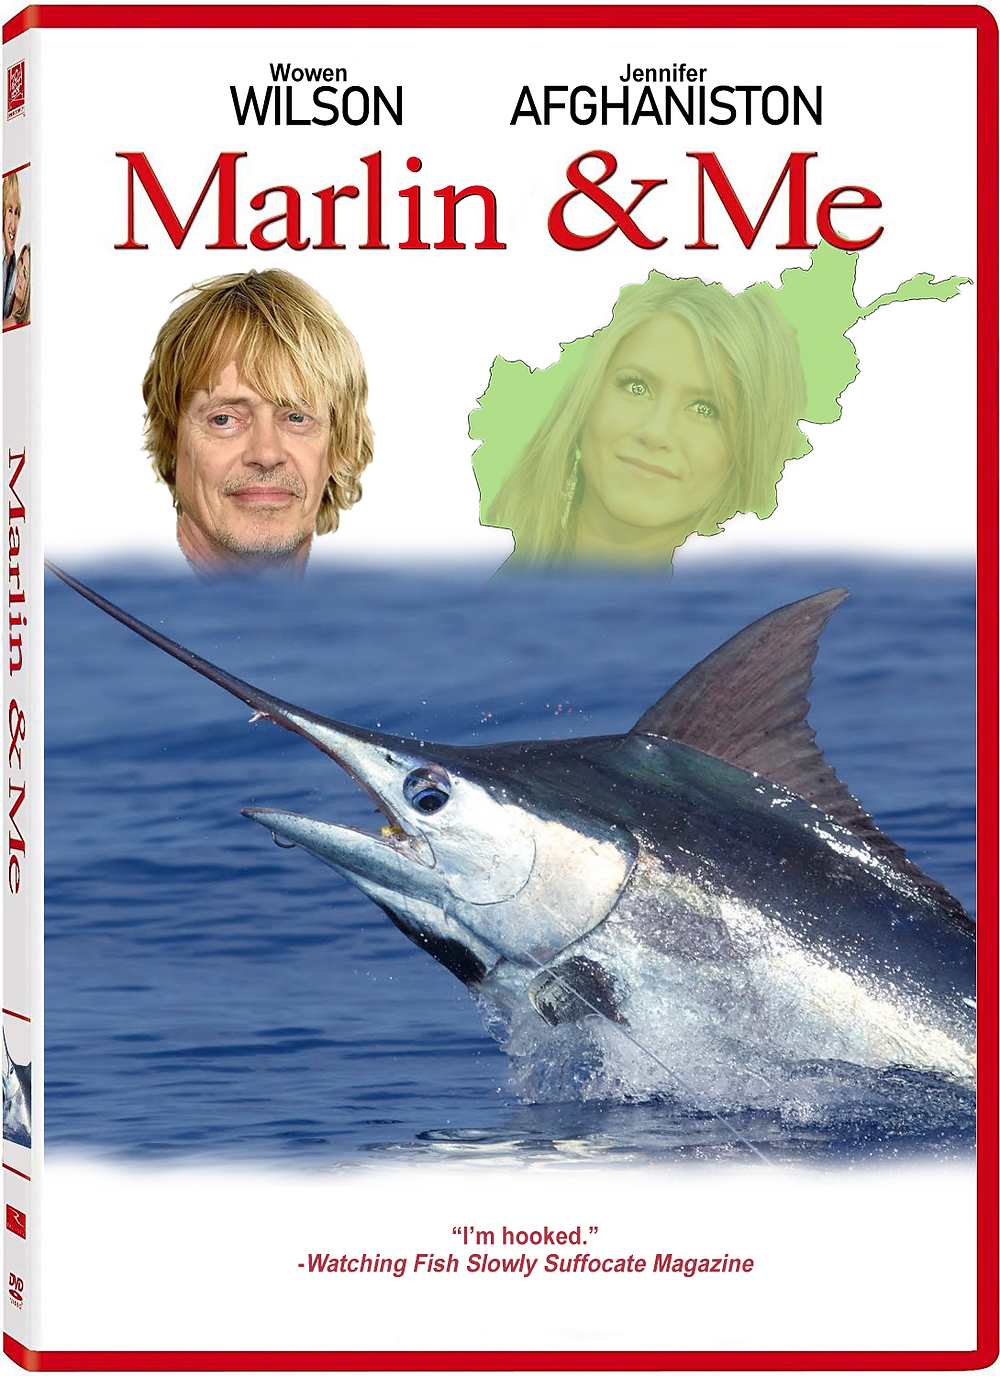 """DVD case. Wowen Wilson. Jennifer Afghaniston. Picture of Steve Buscemi with Owen Wilson's hair. Picture of Jennifer Aniston inside the country of Afghanistan. Big ol' Marlin below them. """"I'm hooked,"""" says Watching Fish Slowly Suffocate Magazine."""